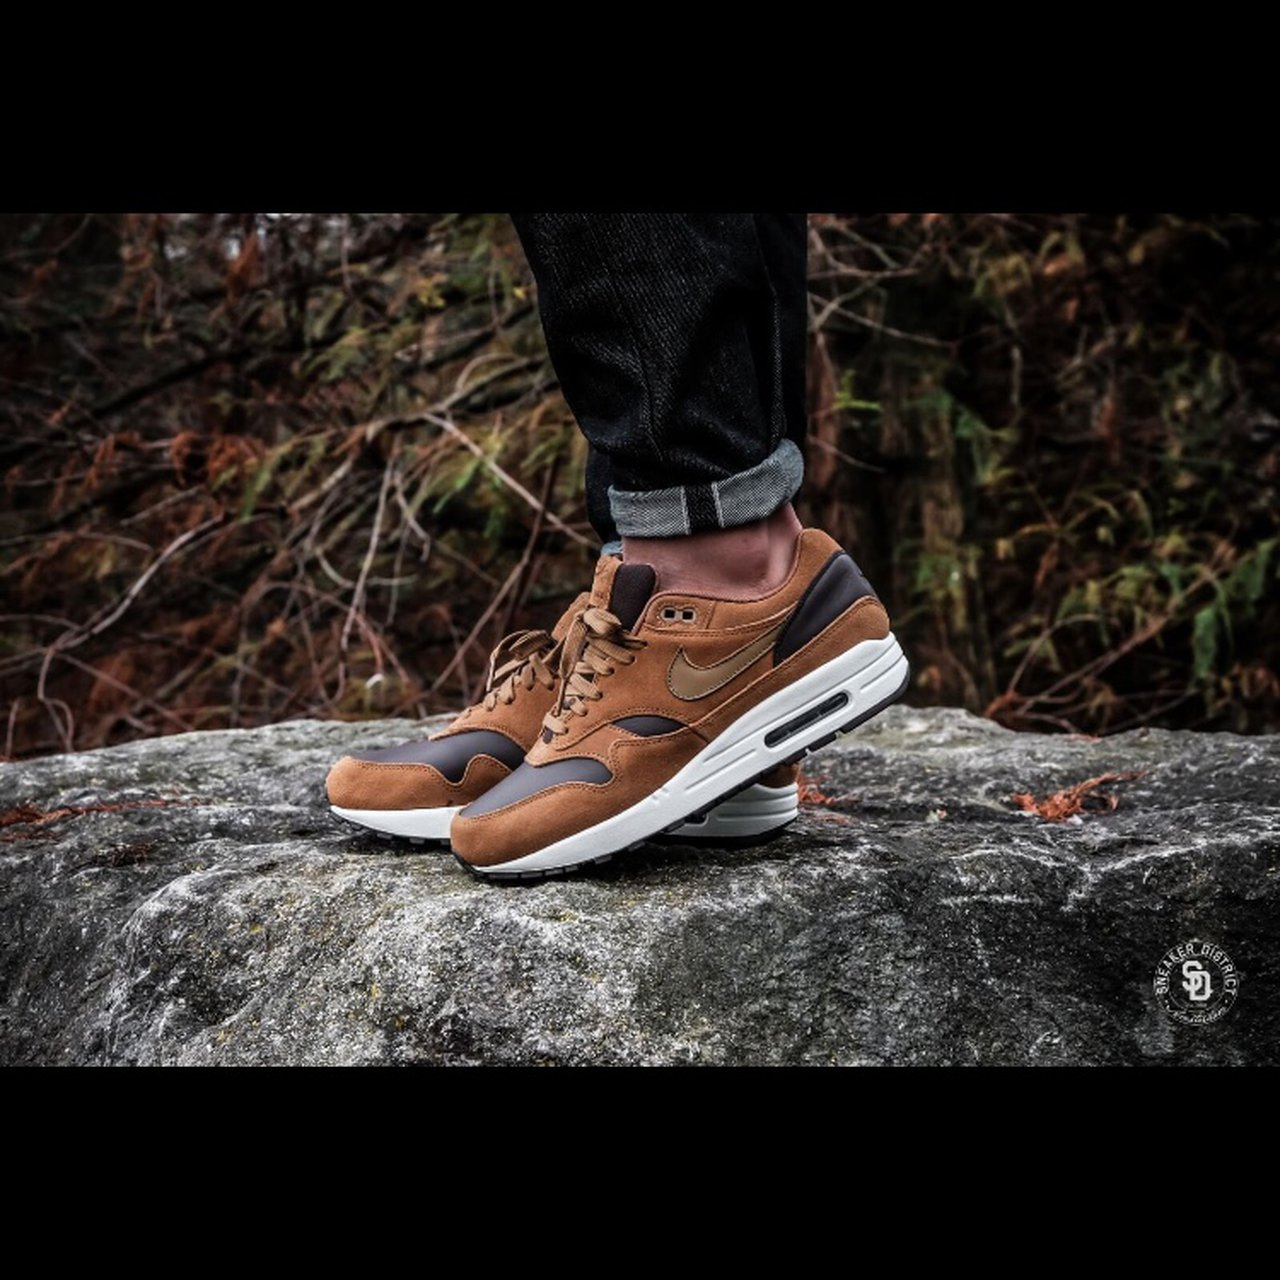 323894db1879d4 Nike Air Max 1 Premium Leather Ale Brown Golden Brown. Size - Depop